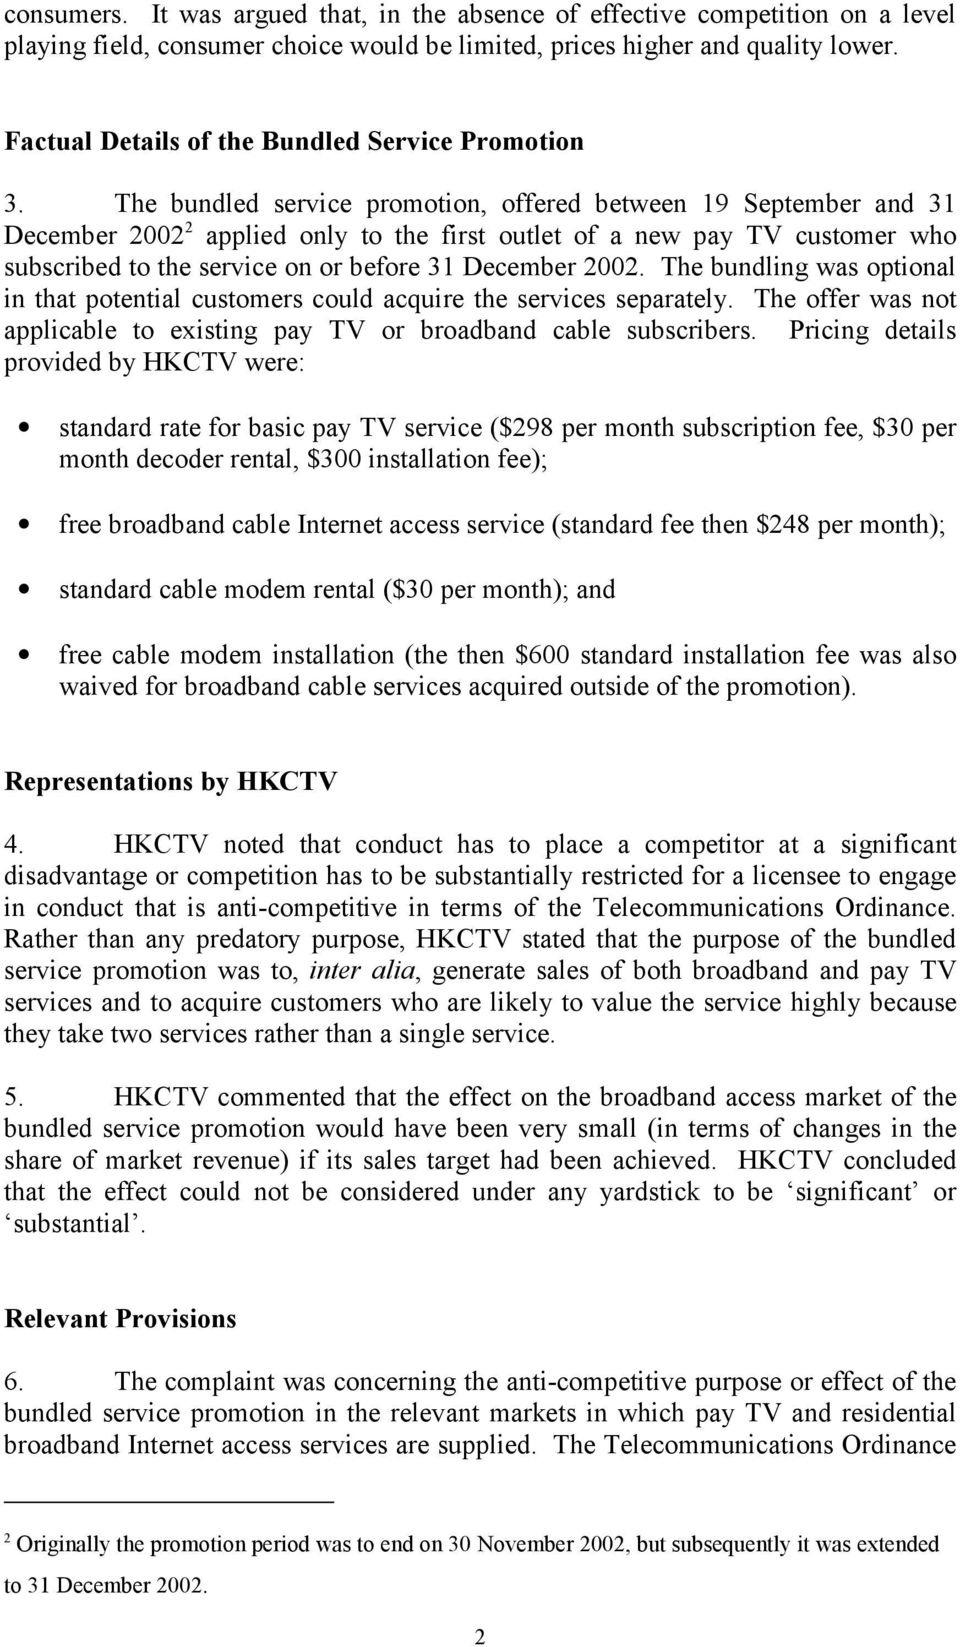 The bundled service promotion, offered between 19 September and 31 December 2002 2 applied only to the first outlet of a new pay TV customer who subscribed to the service on or before 31 December